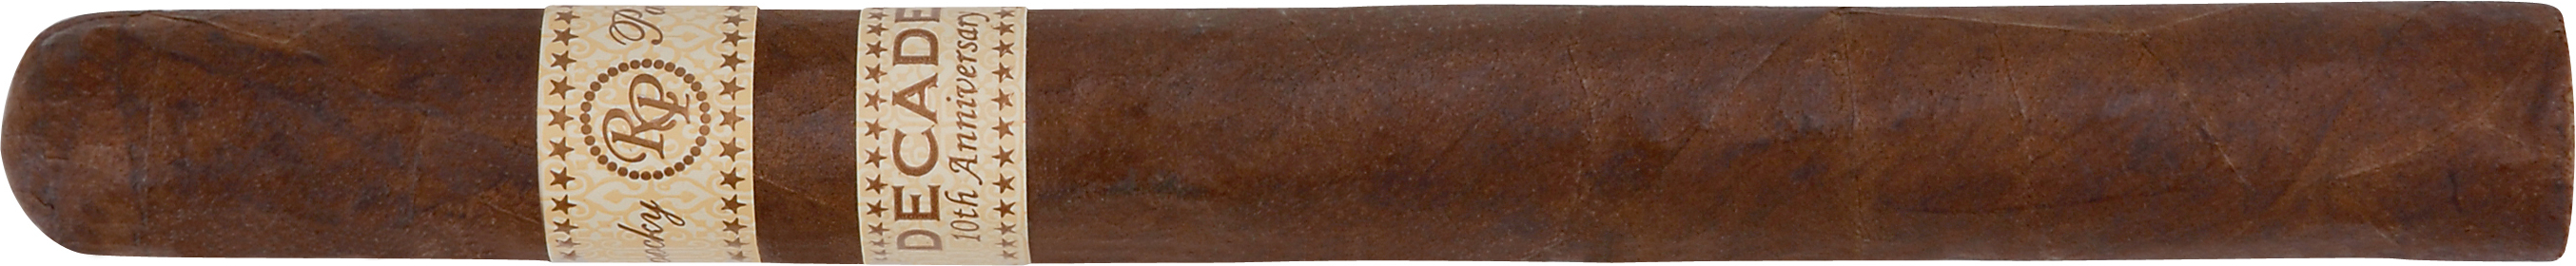 Rocky Patel Decade Lonsdale